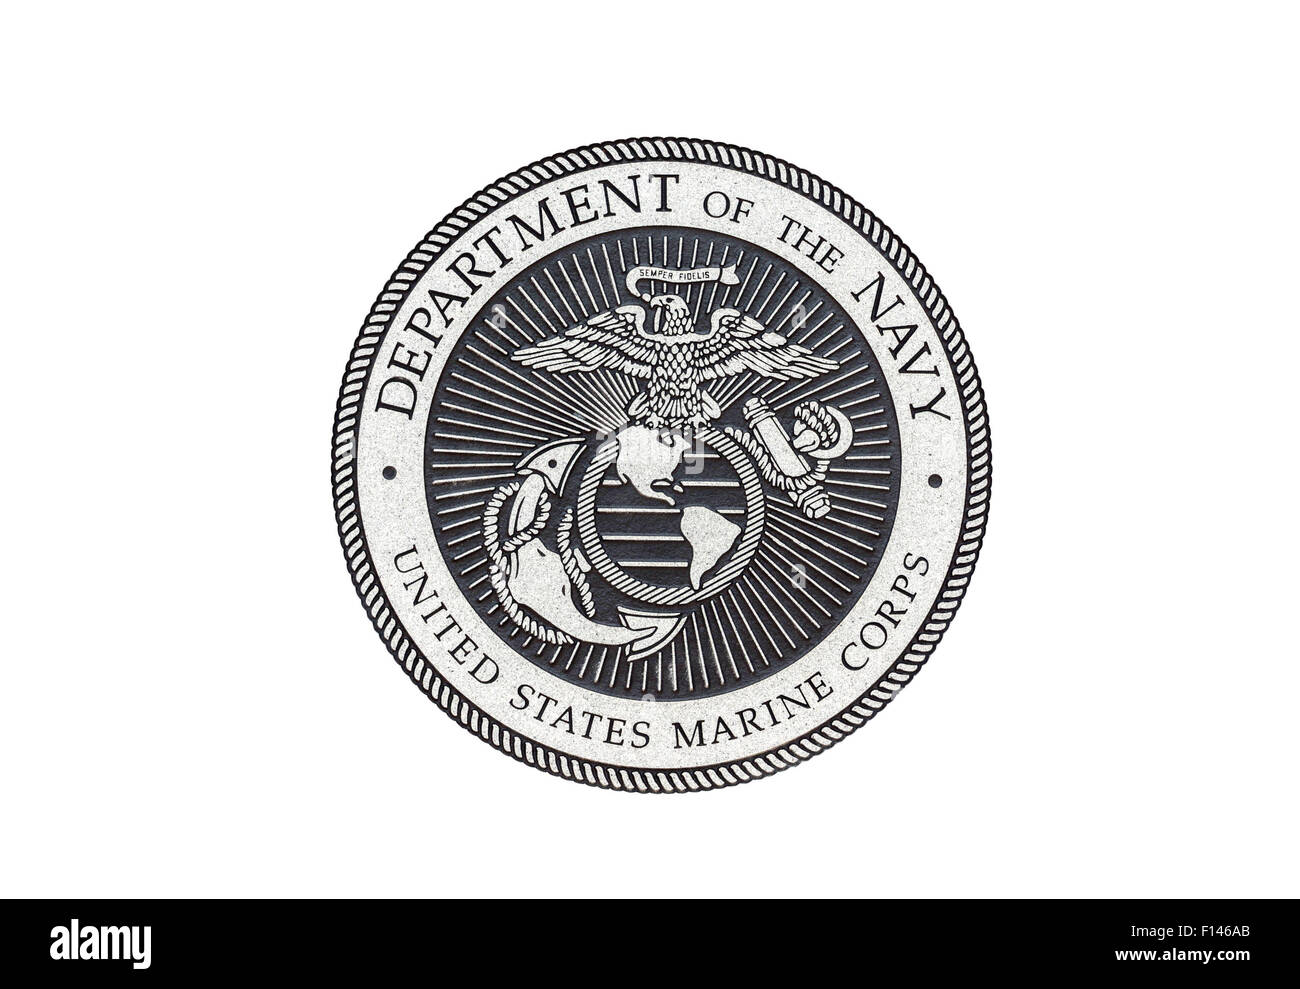 U.S. Marine Corps  official seal on a white background. - Stock Image